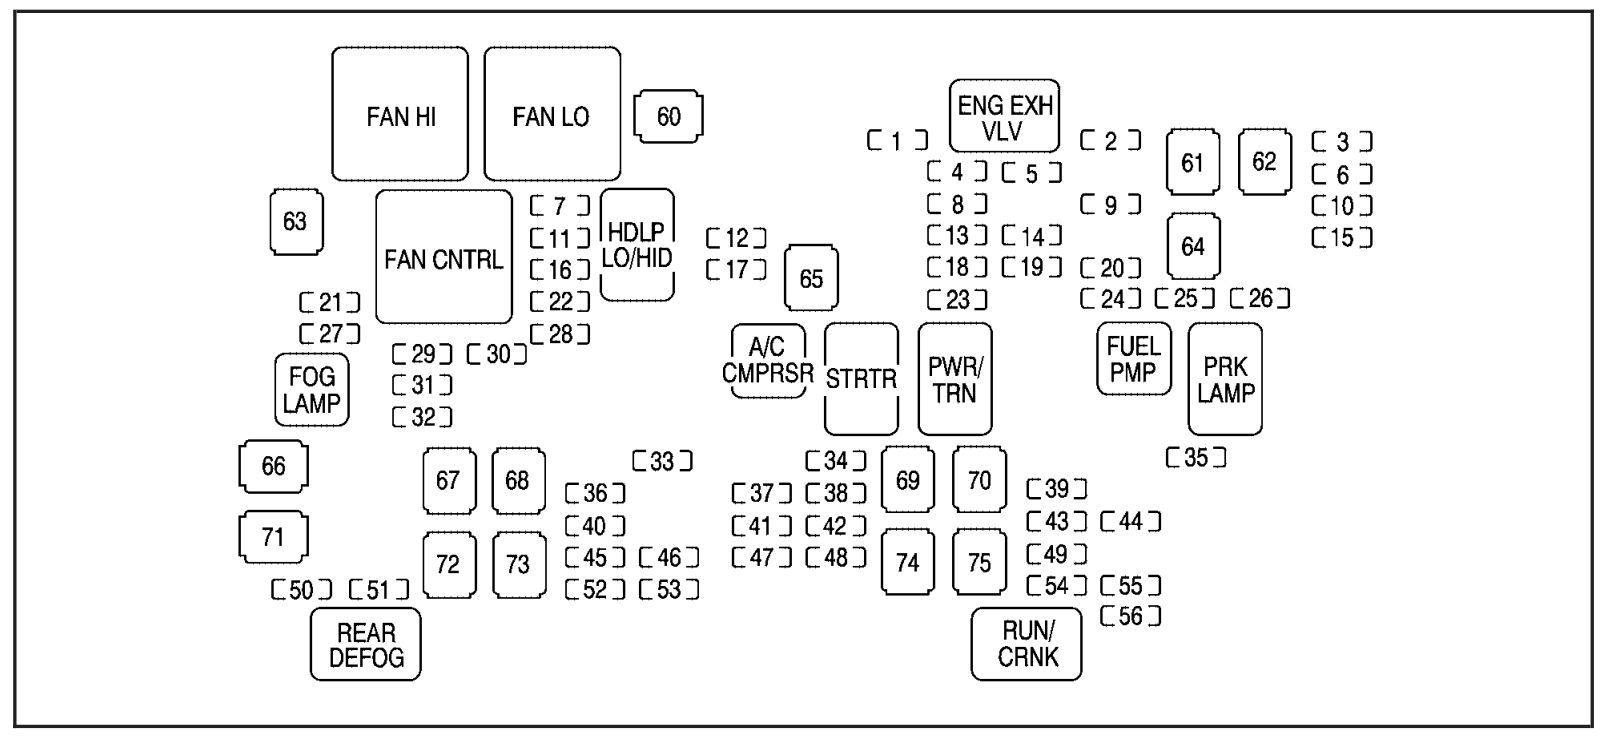 [DIAGRAM] 2005 Chevrolet Steering Column Wiring Diagram